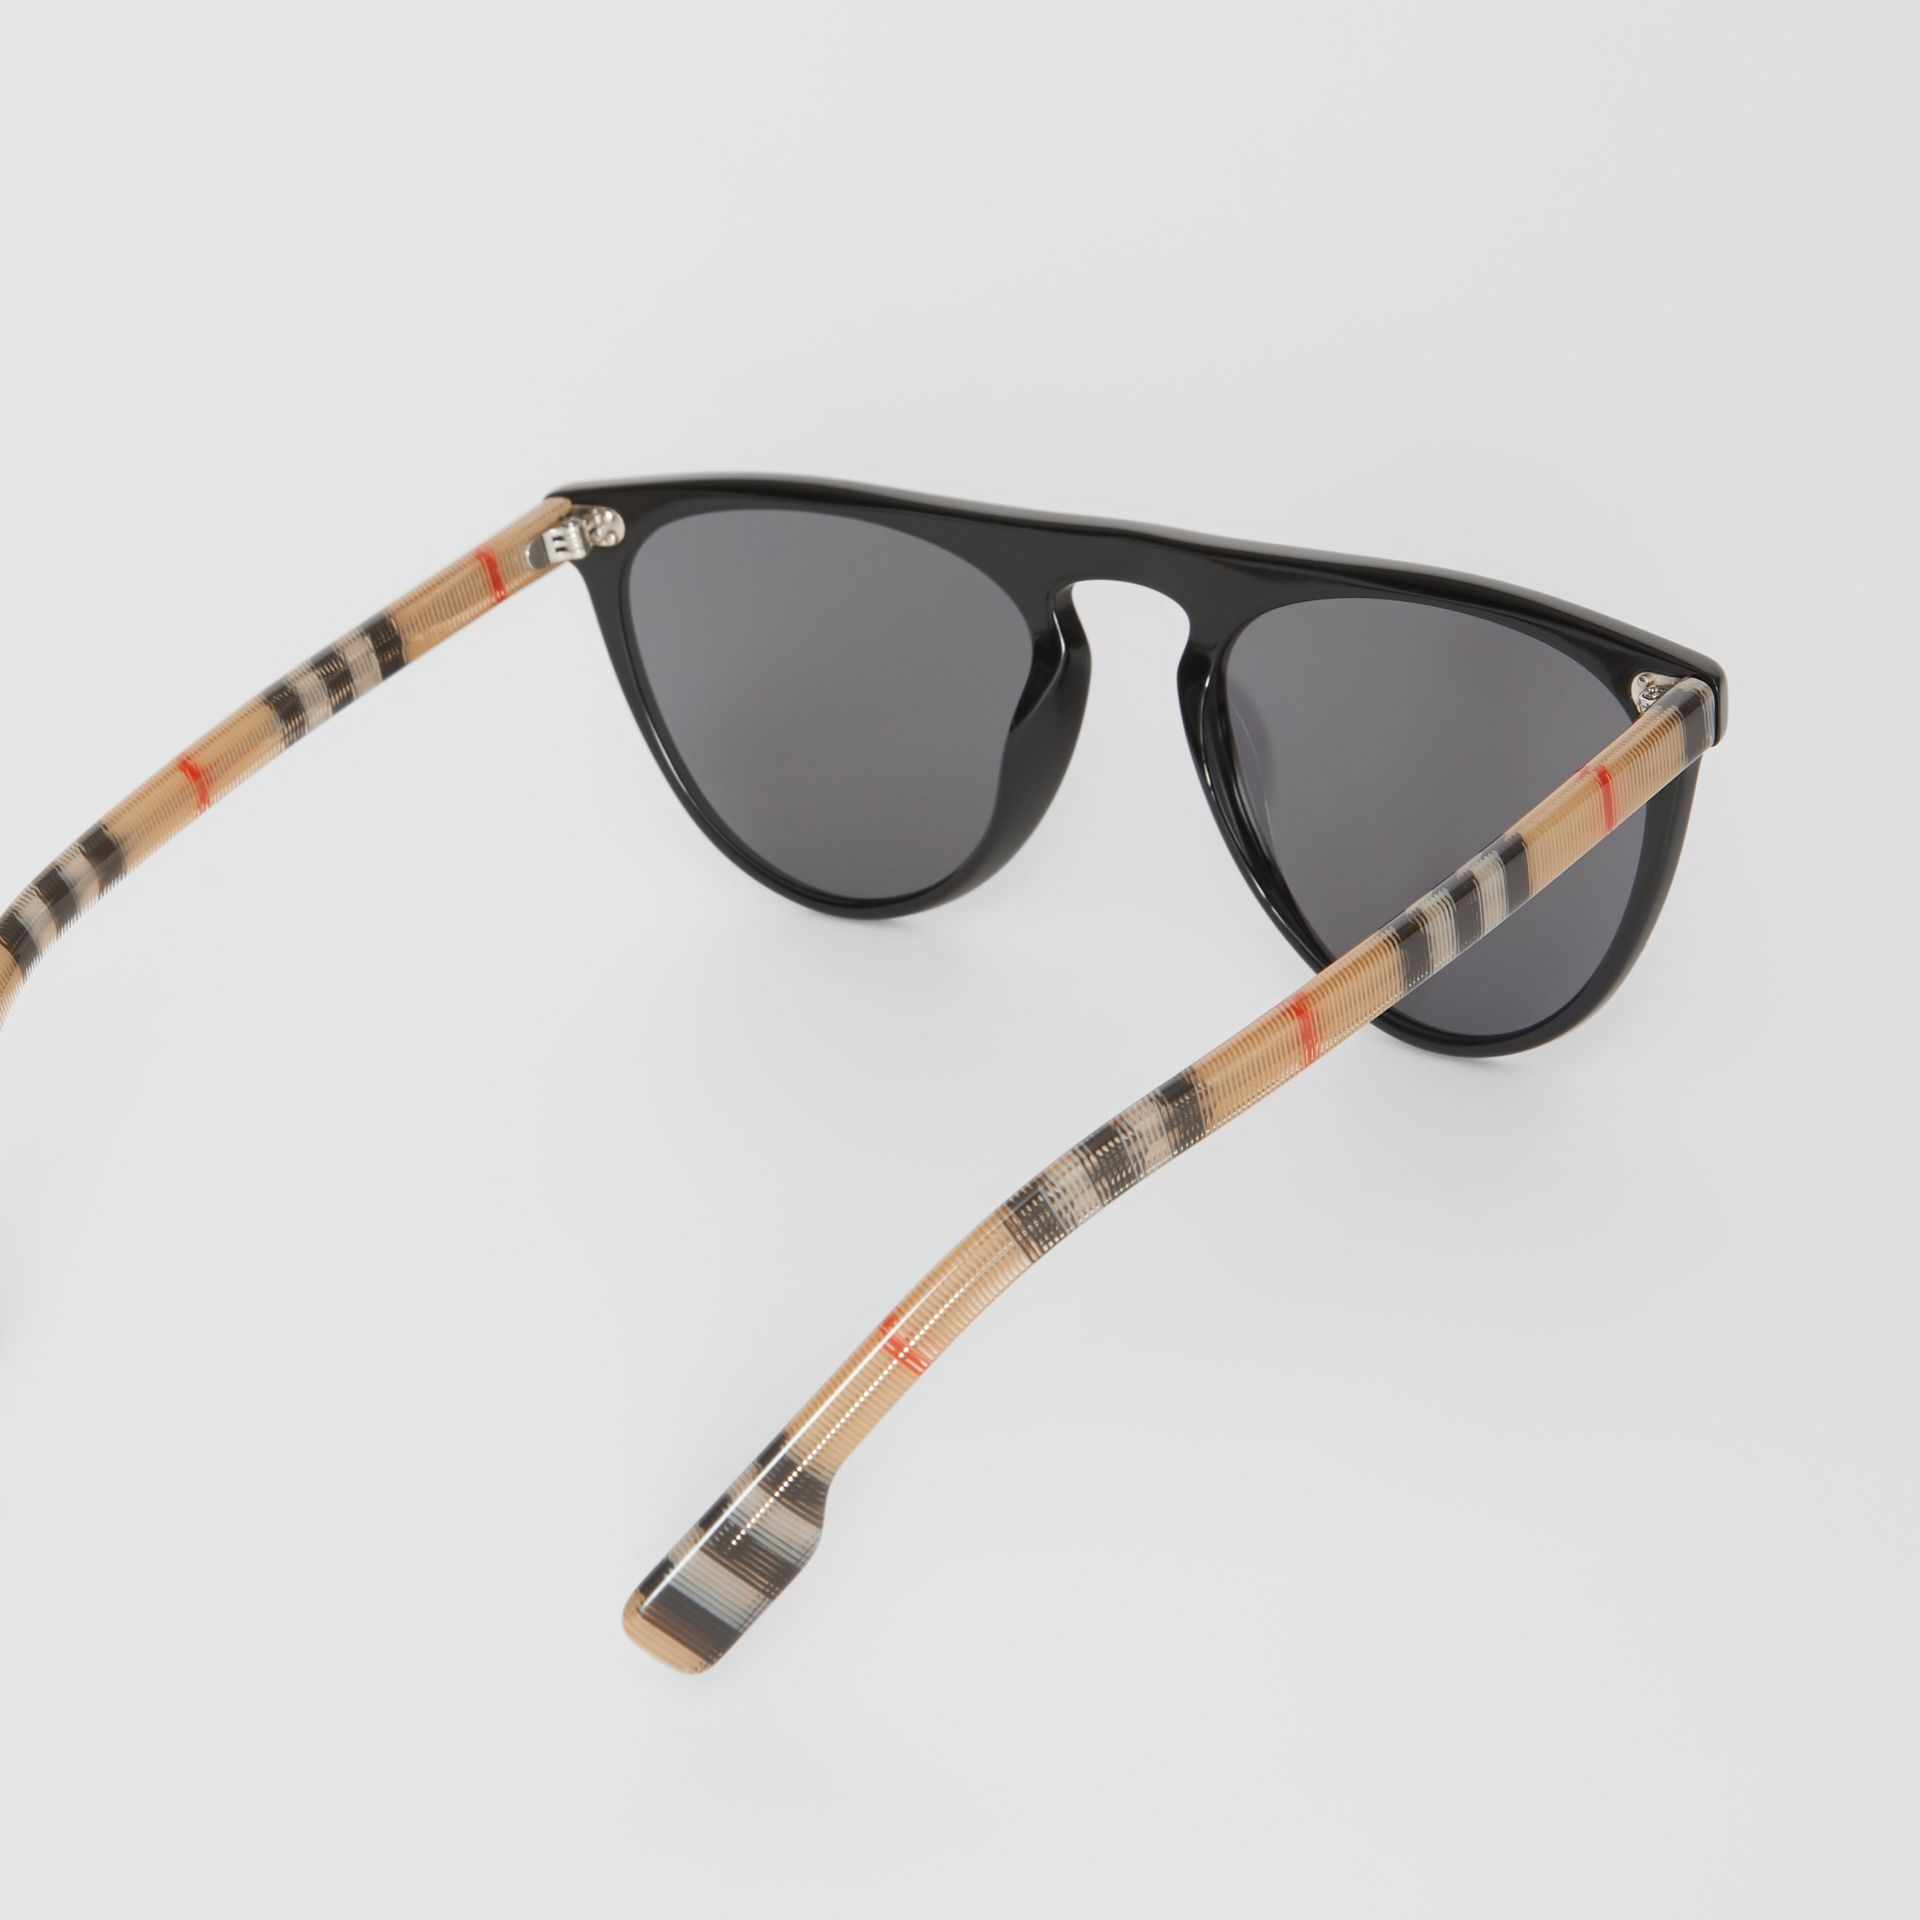 Vintage Check Detail Keyhole D-shaped Sunglasses in Black/beige - Men | Burberry - gallery image 4